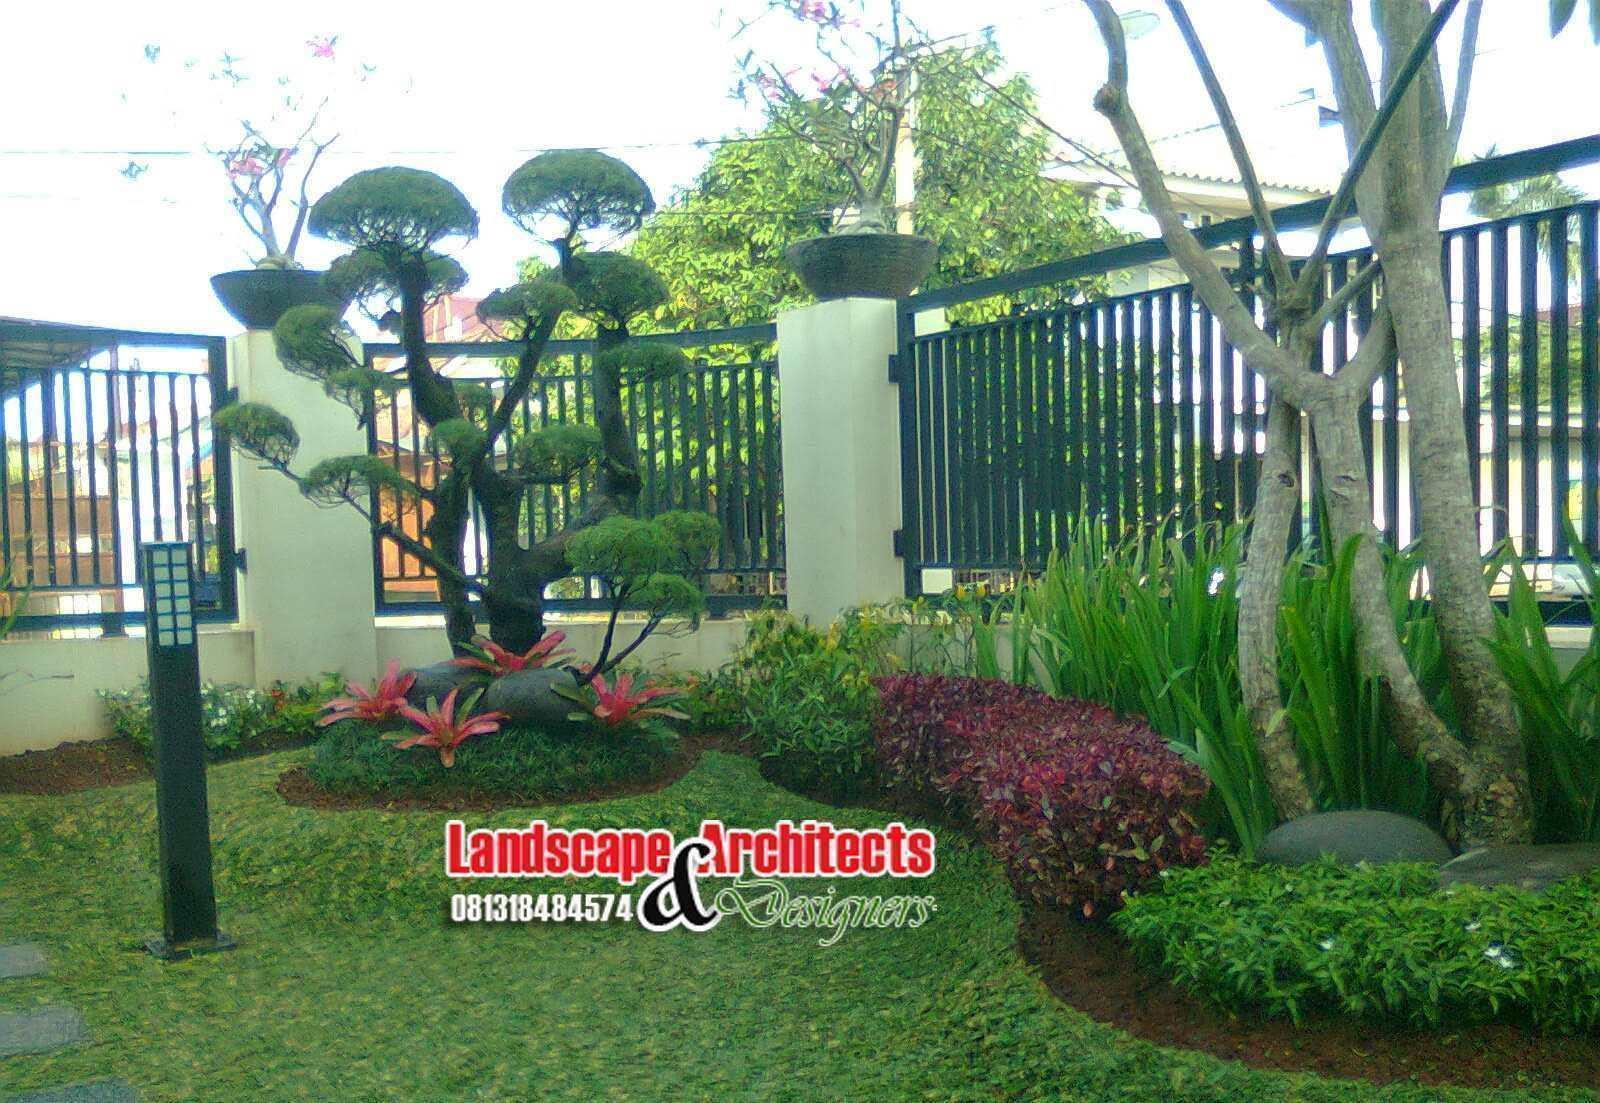 Landscape Architects and Designer - Tukang Taman